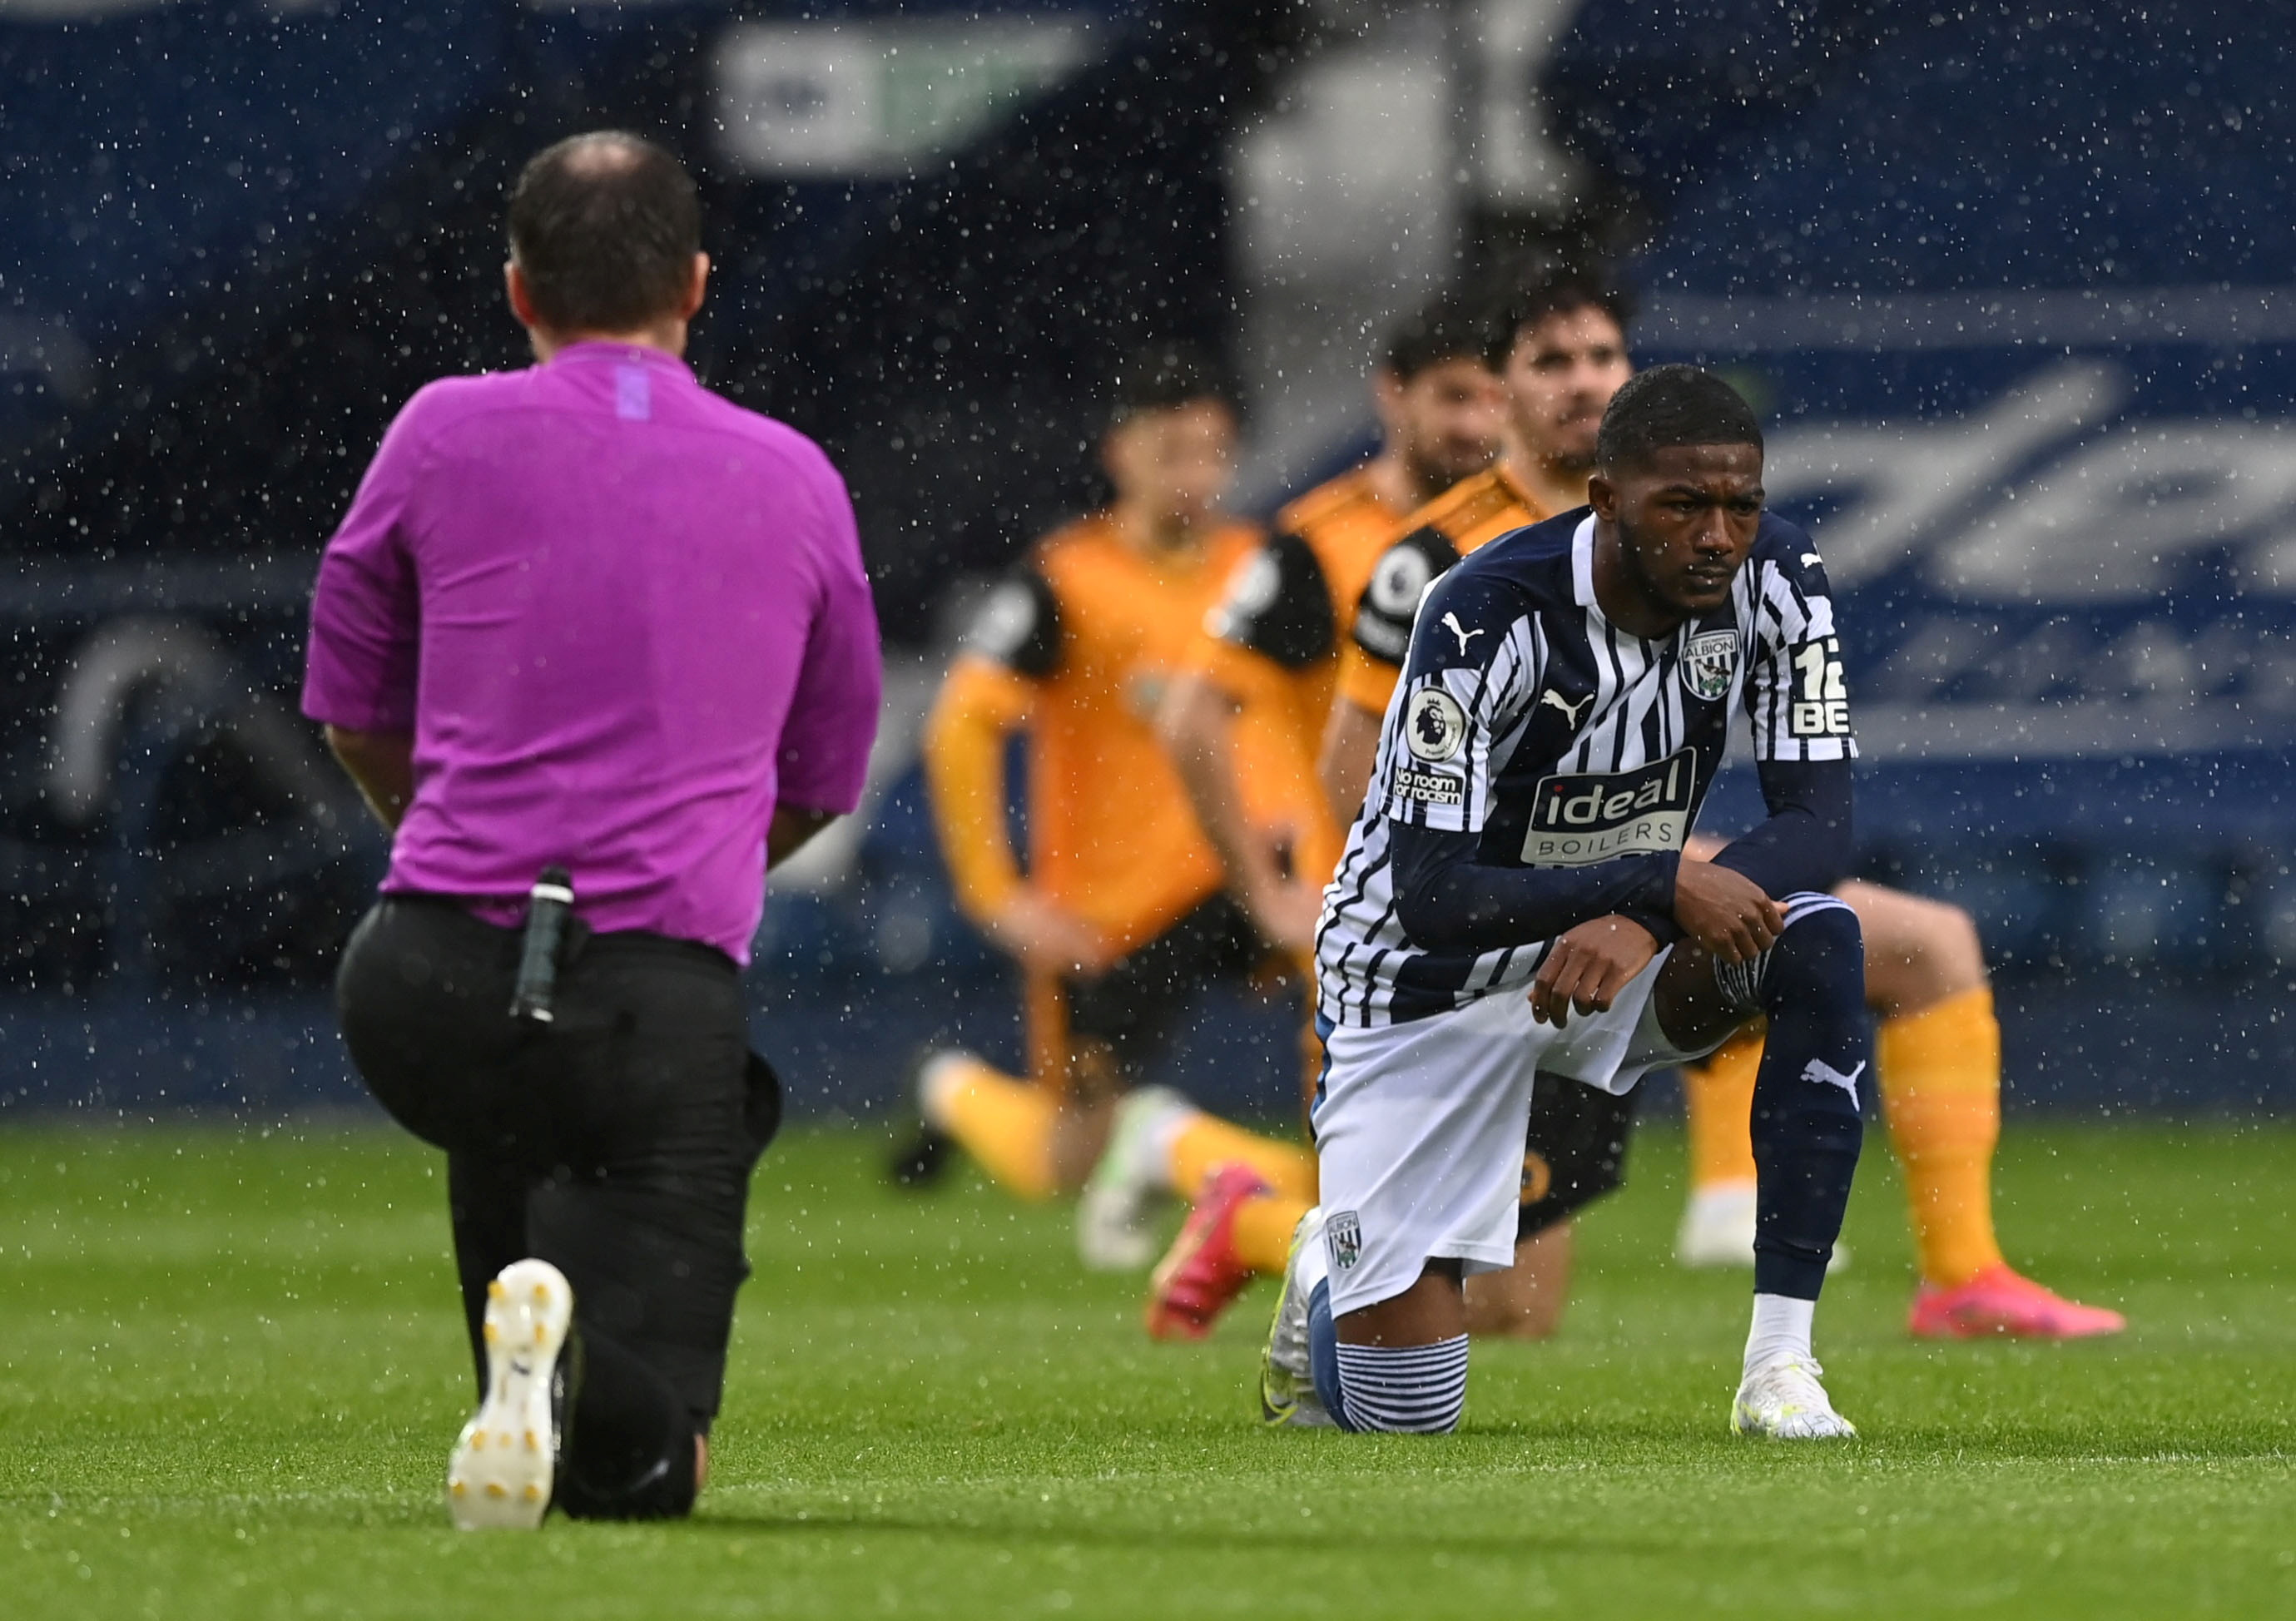 Soccer Football - Premier League - West Bromwich Albion v Wolverhampton Wanderers - The Hawthorns, West Bromwich, Britain - May 3, 2021 West Bromwich Albion's Ainsley Maitland-Niles takes a knee before the match Pool via REUTERS/Shaun Botterill EDITORIAL USE ONLY. No use with unauthorized audio, video, data, fixture lists, club/league logos or 'live' services. Online in-match use limited to 75 images, no video emulation. No use in betting, games or single club /league/player publications.  Please contact your account representative for further details./File Photo